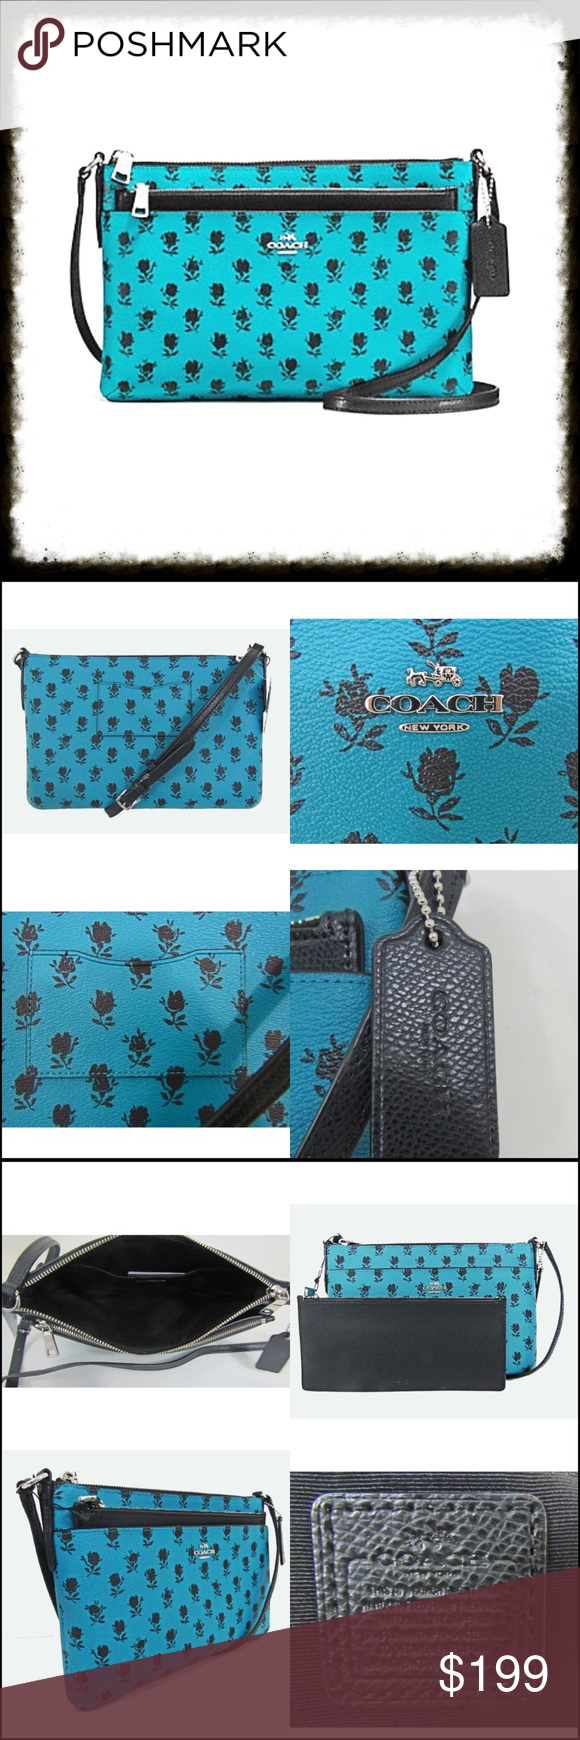 4cc74d6ddc4db Coach Floral Crossbody w/ Pop-Up Pouch COACH East/West Crossbody with Popup  Pouch Gift receipt included 100% authentic Incudes black pebble leather pop- up ...